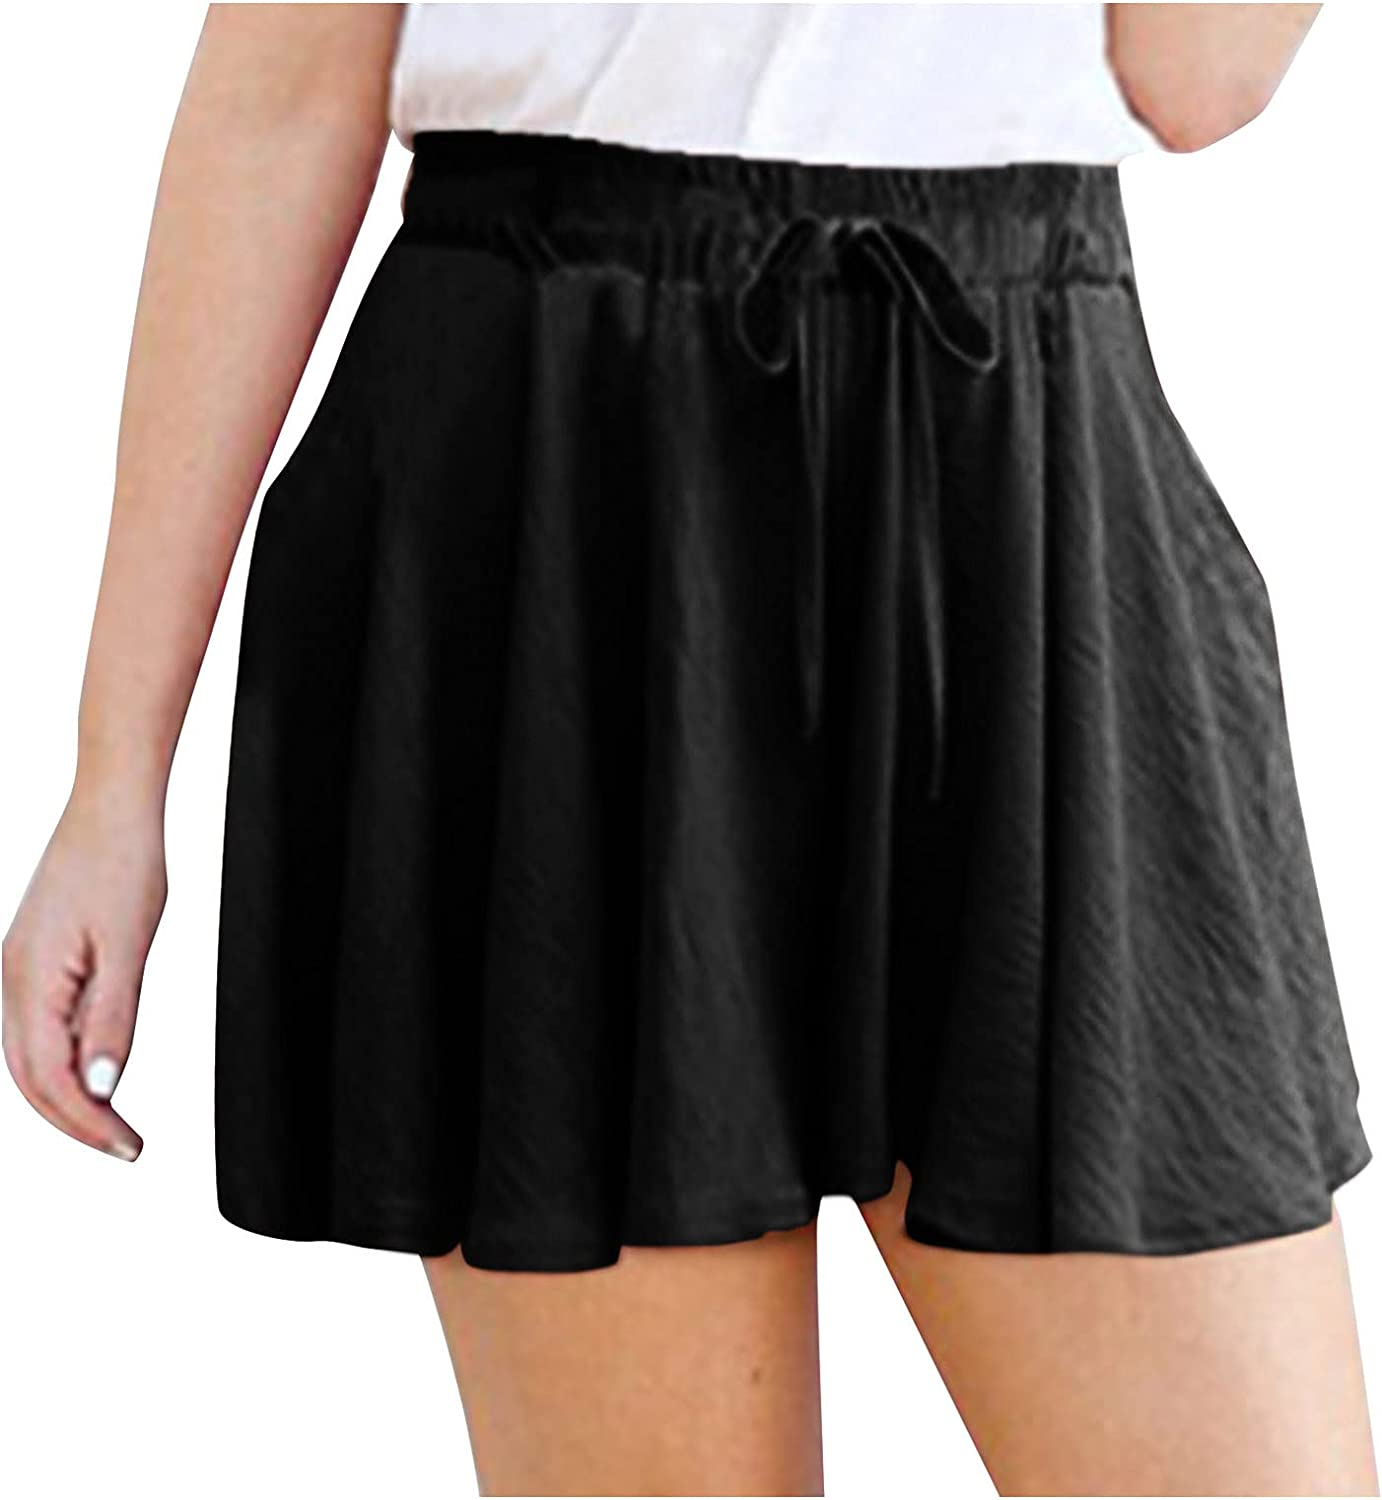 KEJINKCSEE Women's Casual Shorts Directly managed store Waist High Drawstring Wid Sale price